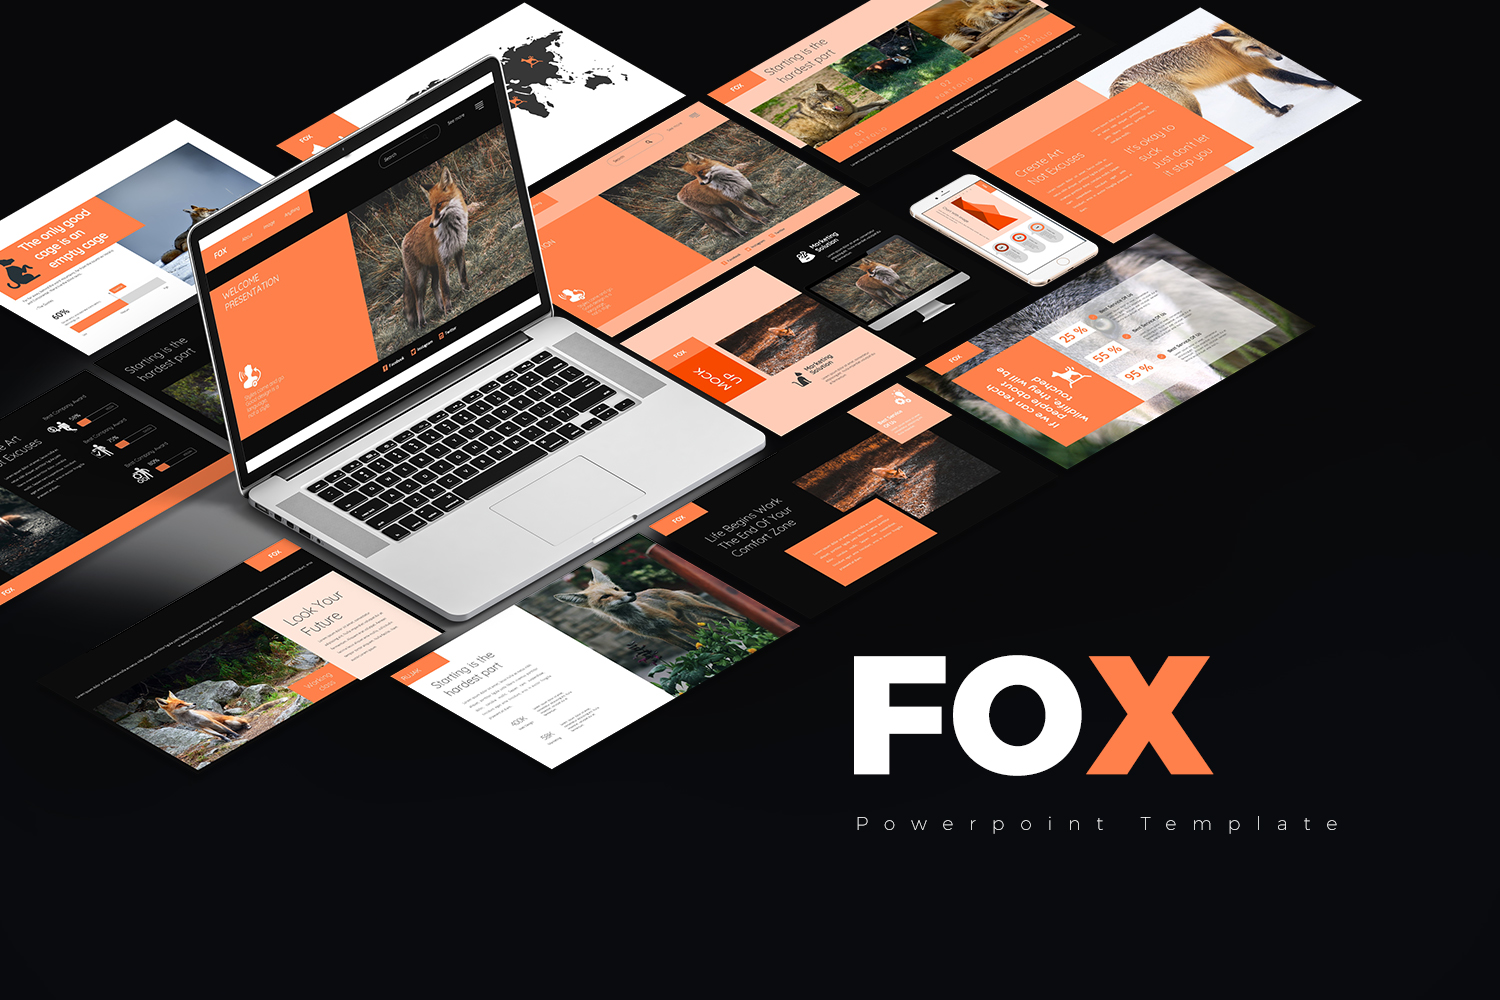 Fox Presentation PowerPoint Template